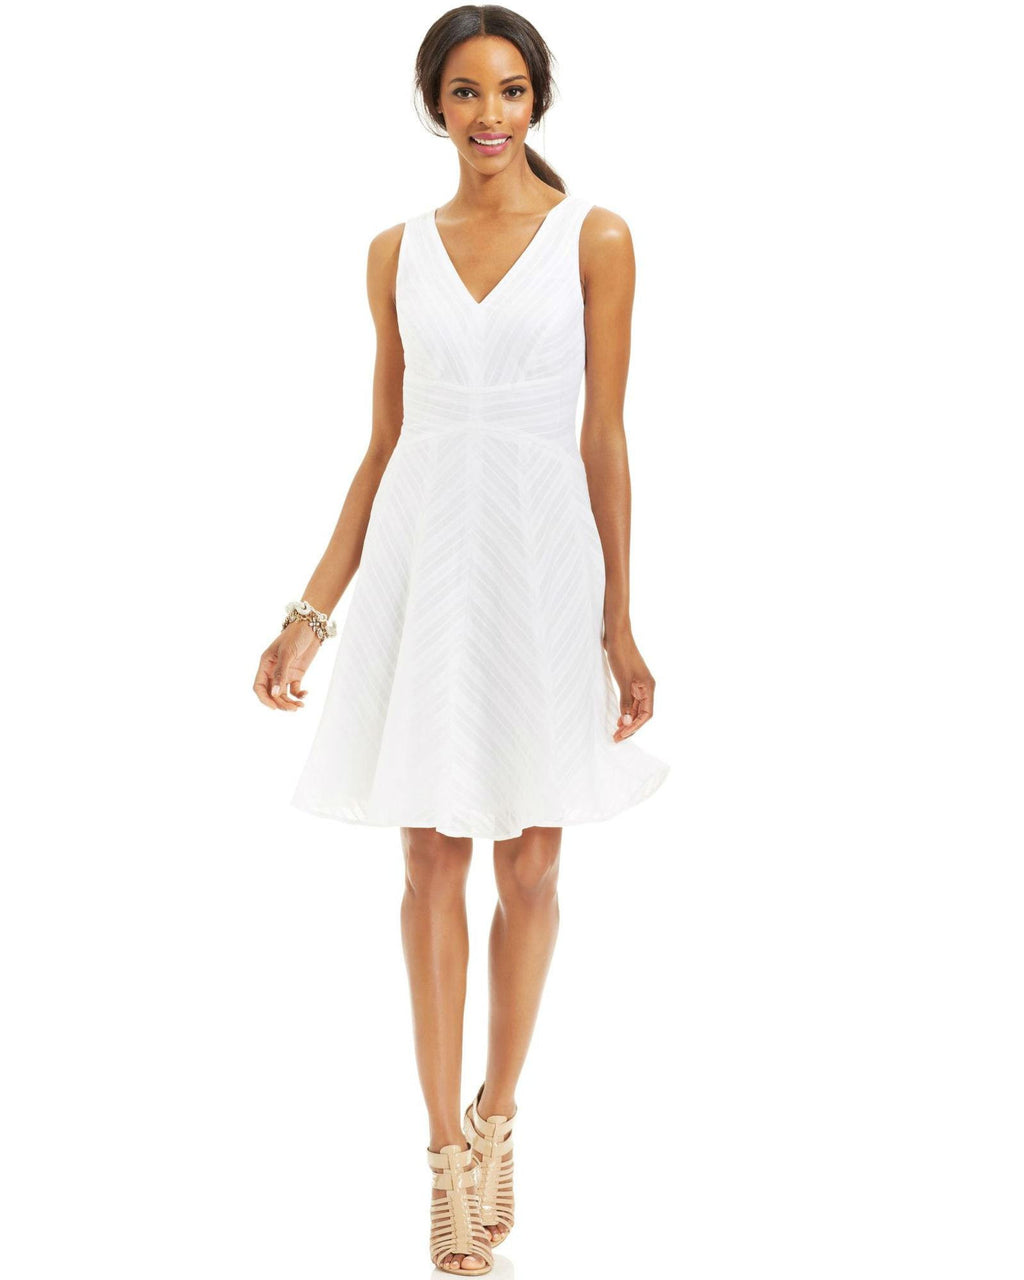 Nine West Embroidered Stripe Cotton Dress-NINE WEST-Fashionbarn shop